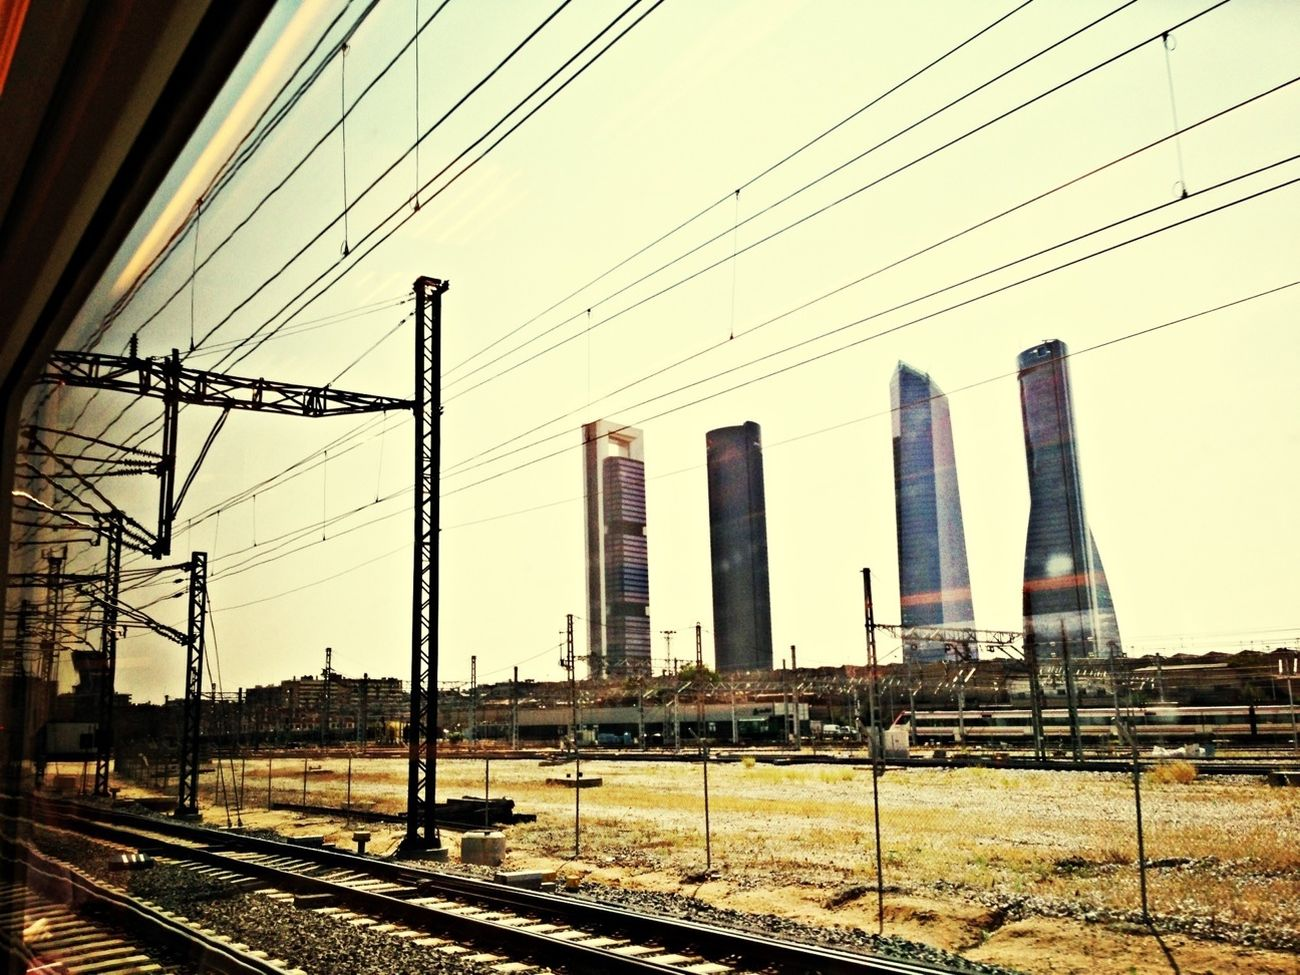 Leaving Madrid #train #travel